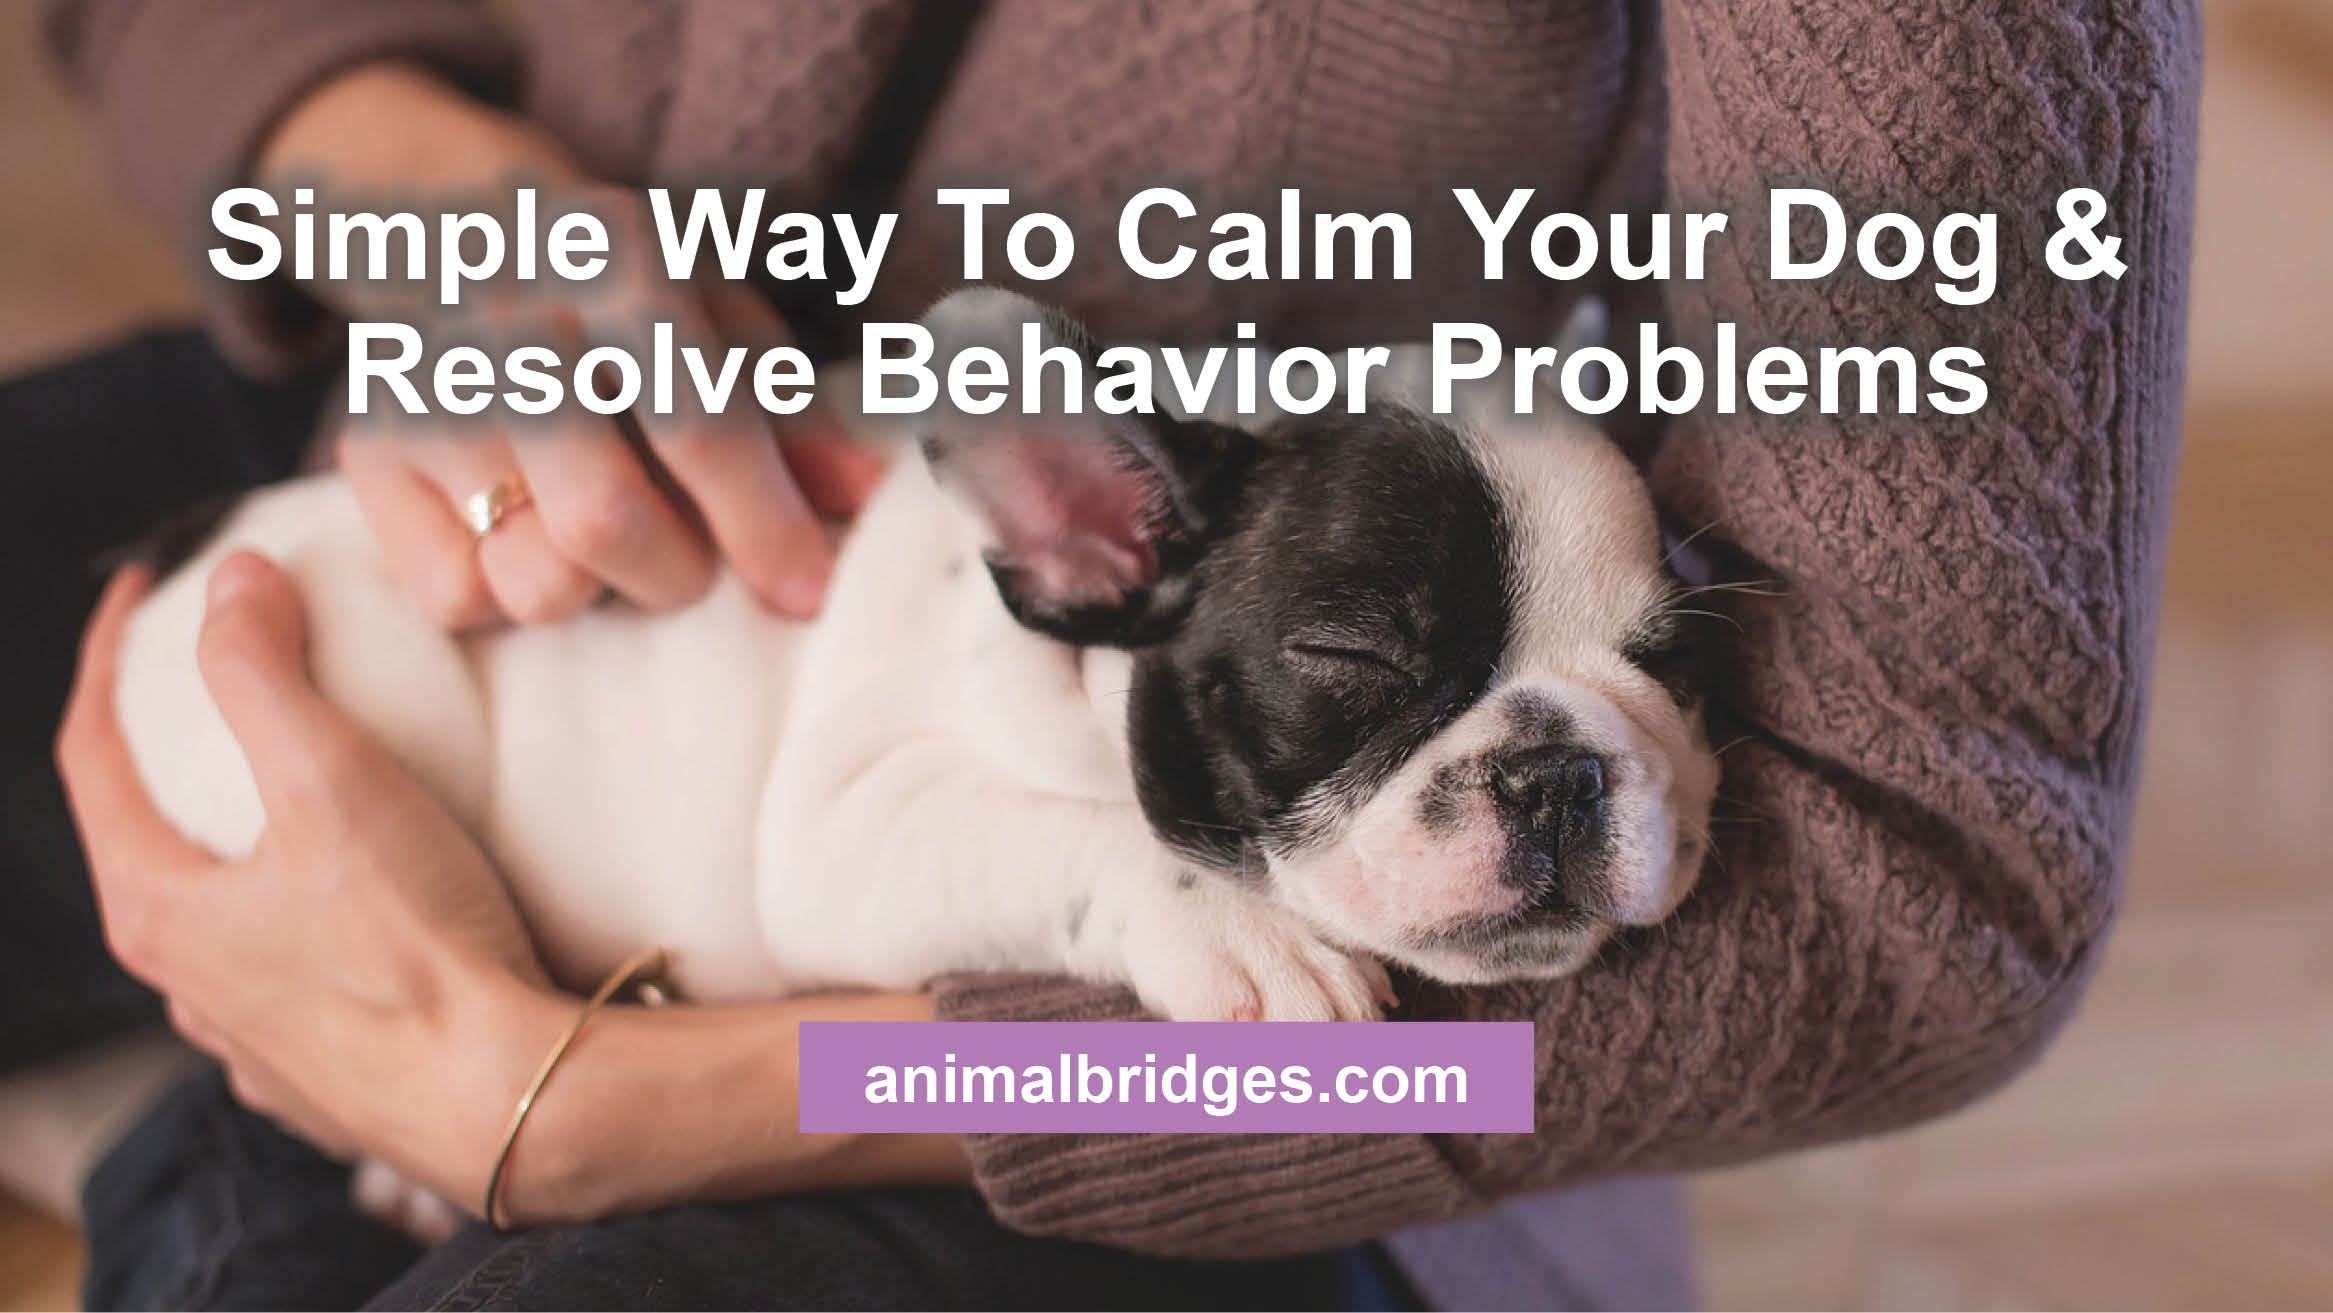 Simple way to calm your dog & resolve behavior problems